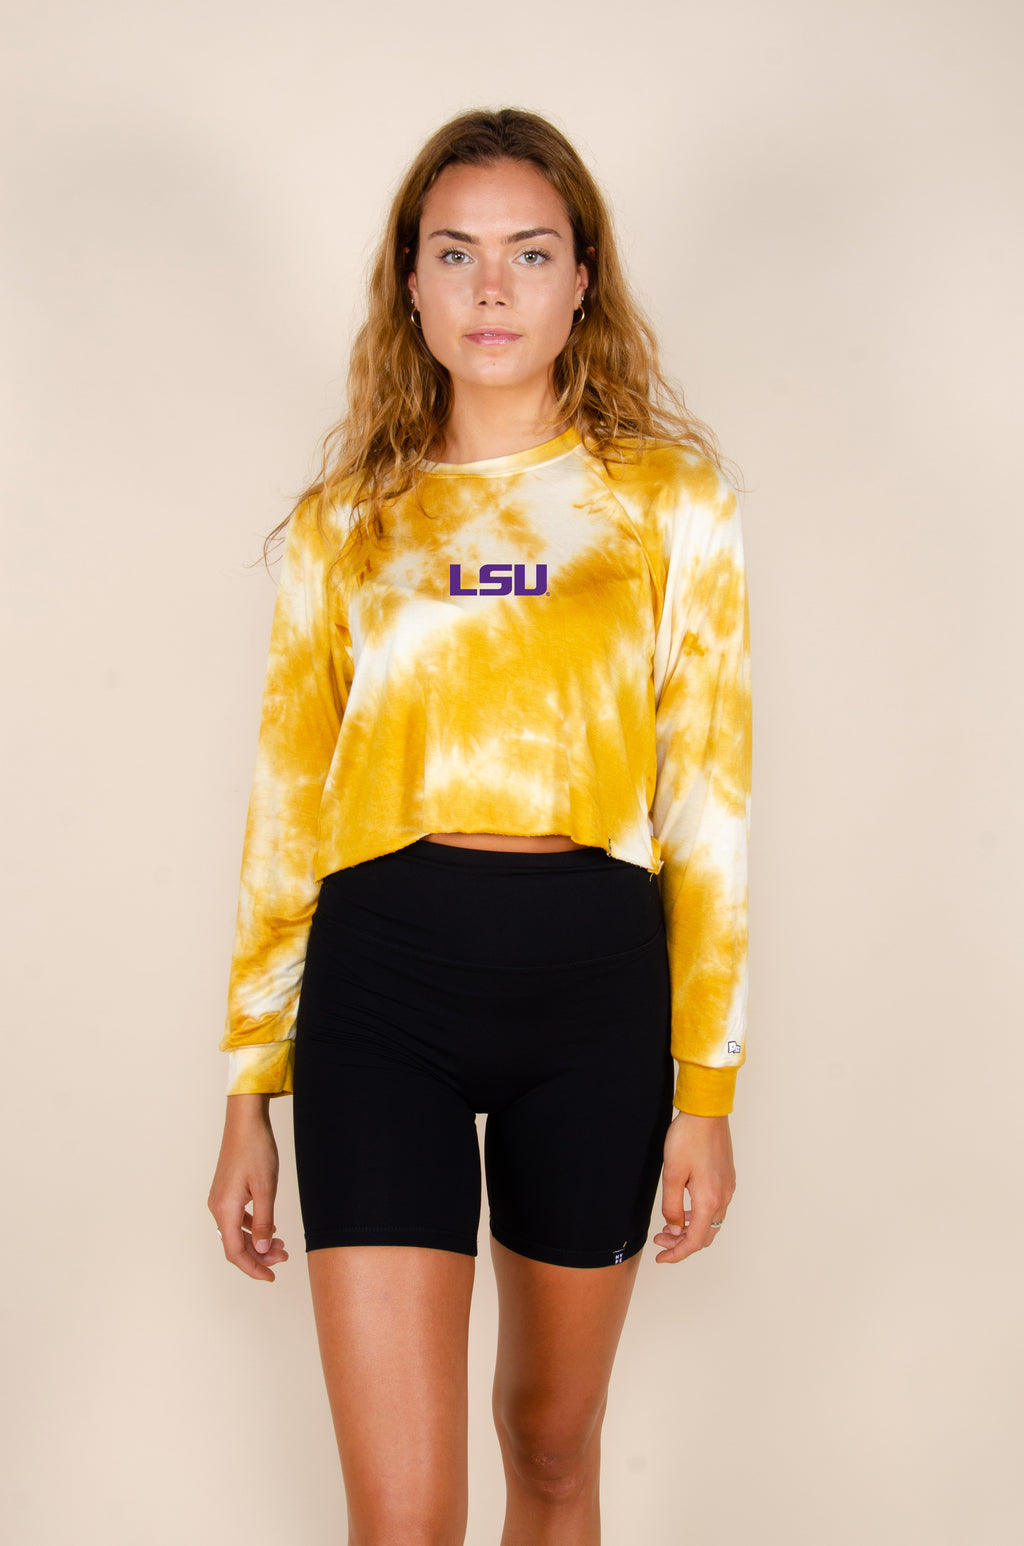 MTO LSU Tie Dye Dreams Top